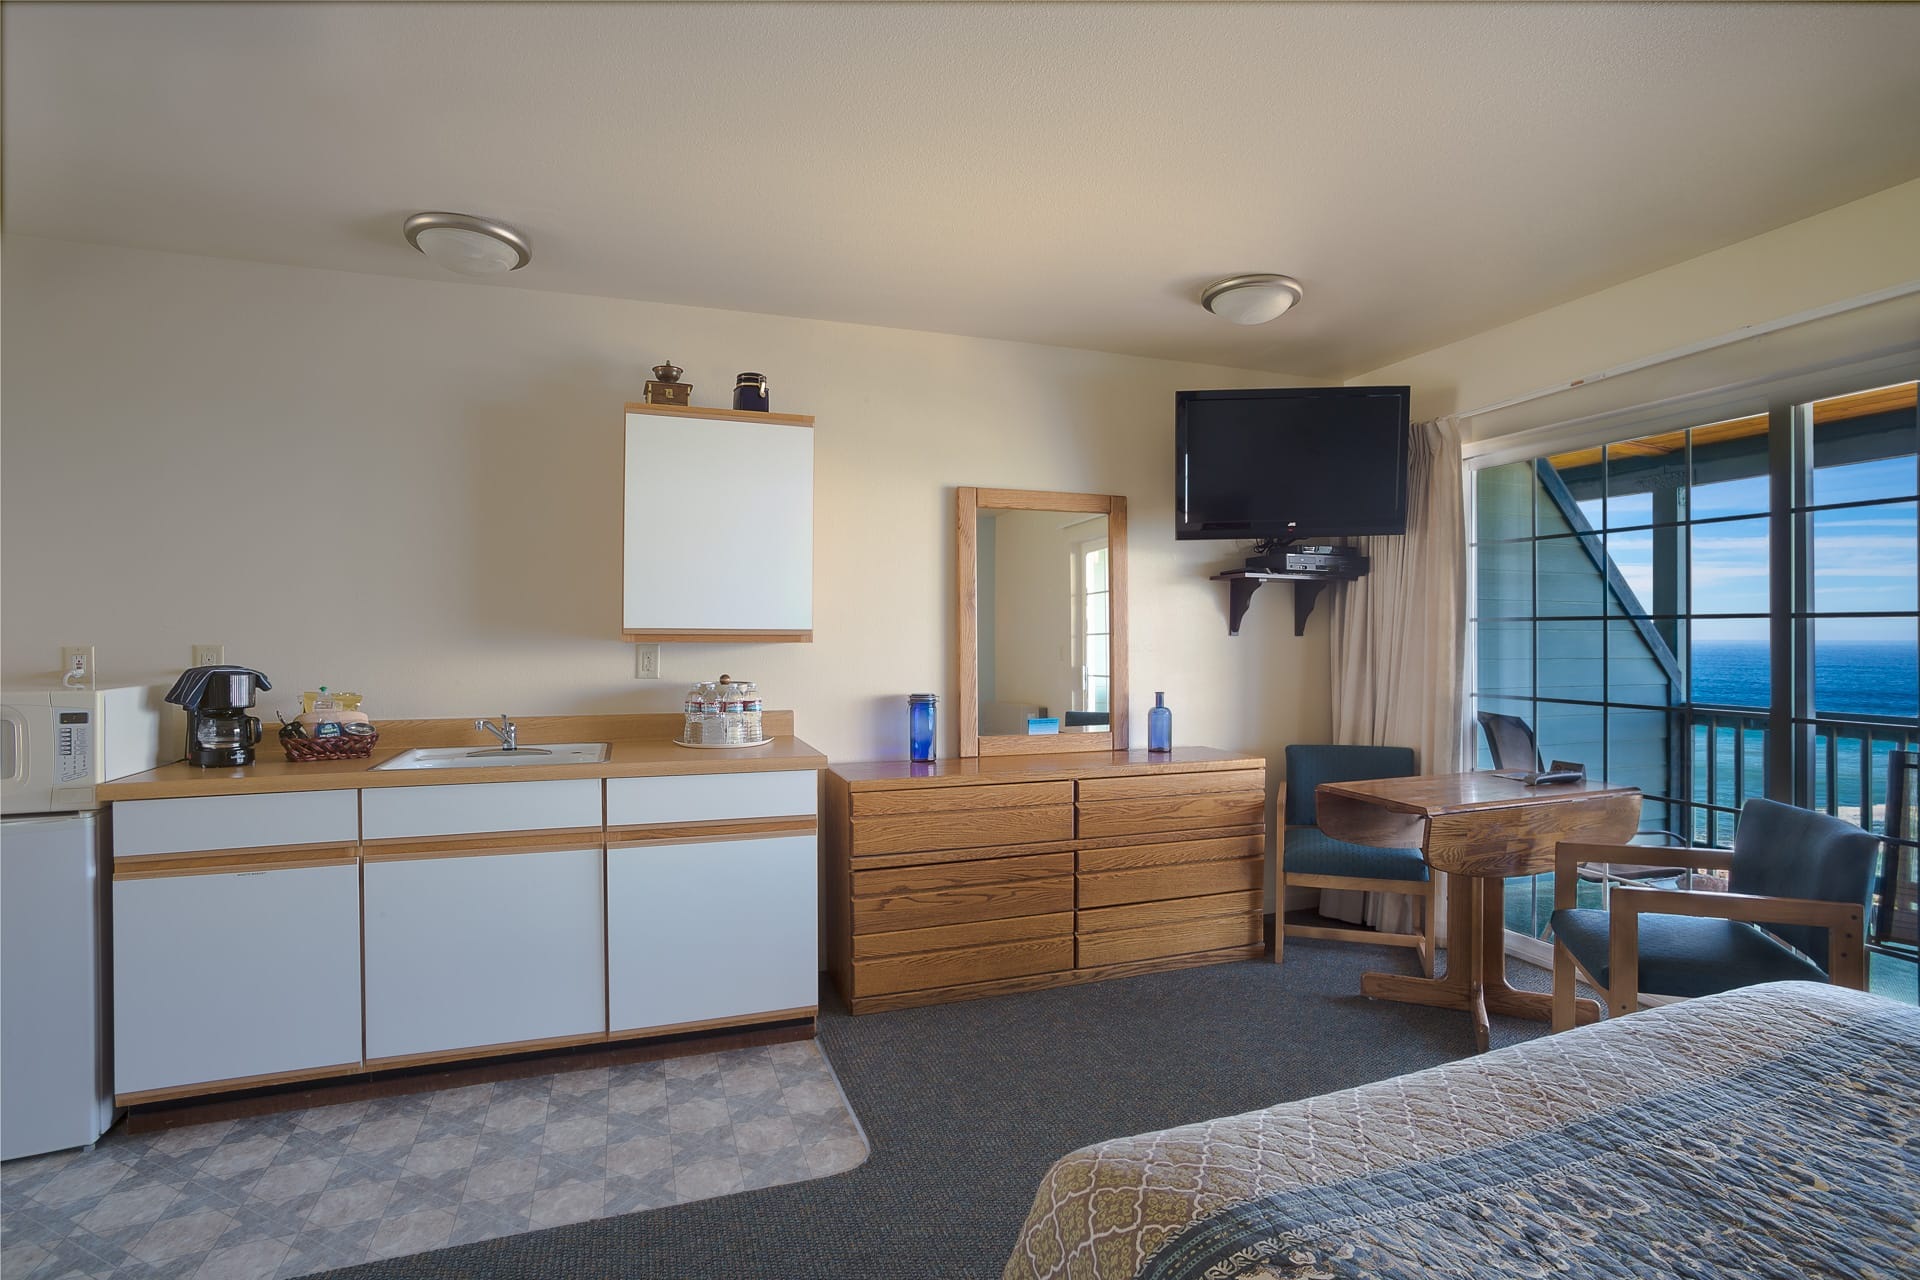 Inn of the Lost Coast Standard Double Queen Guestroom extended stay kitchenette with microwave, mini refrigerator, dresser drawers, HD flatscreen with Direct TV, workspace, and balcony view of the Northern California Pacific Ocean.